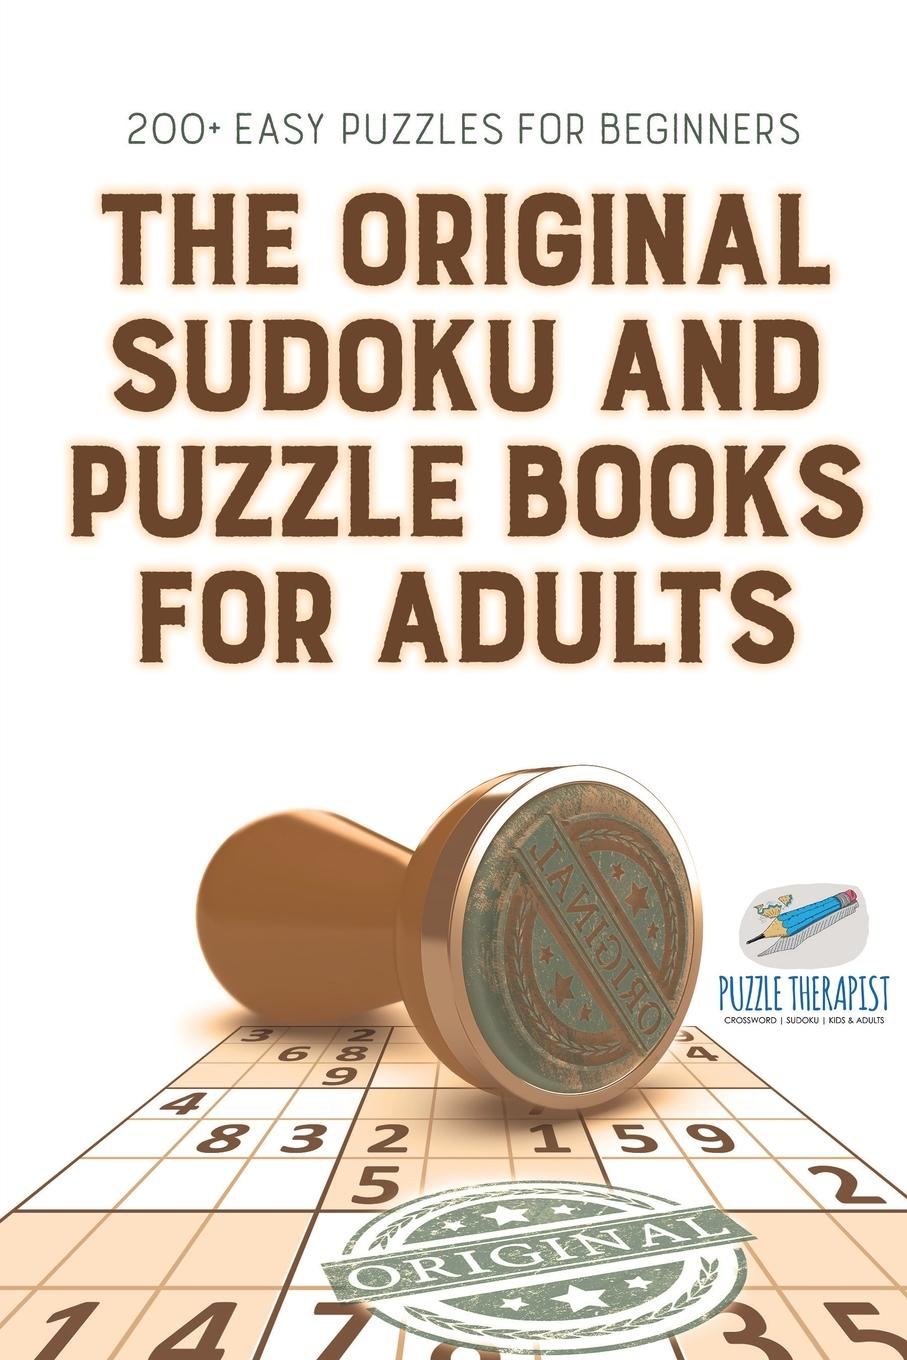 Speedy Publishing The Original Sudoku and Puzzle Books for Adults . 200+ Easy Puzzles for Beginners puzzle therapist one a day sudoku for the utterly obsessed large print puzzles for adults